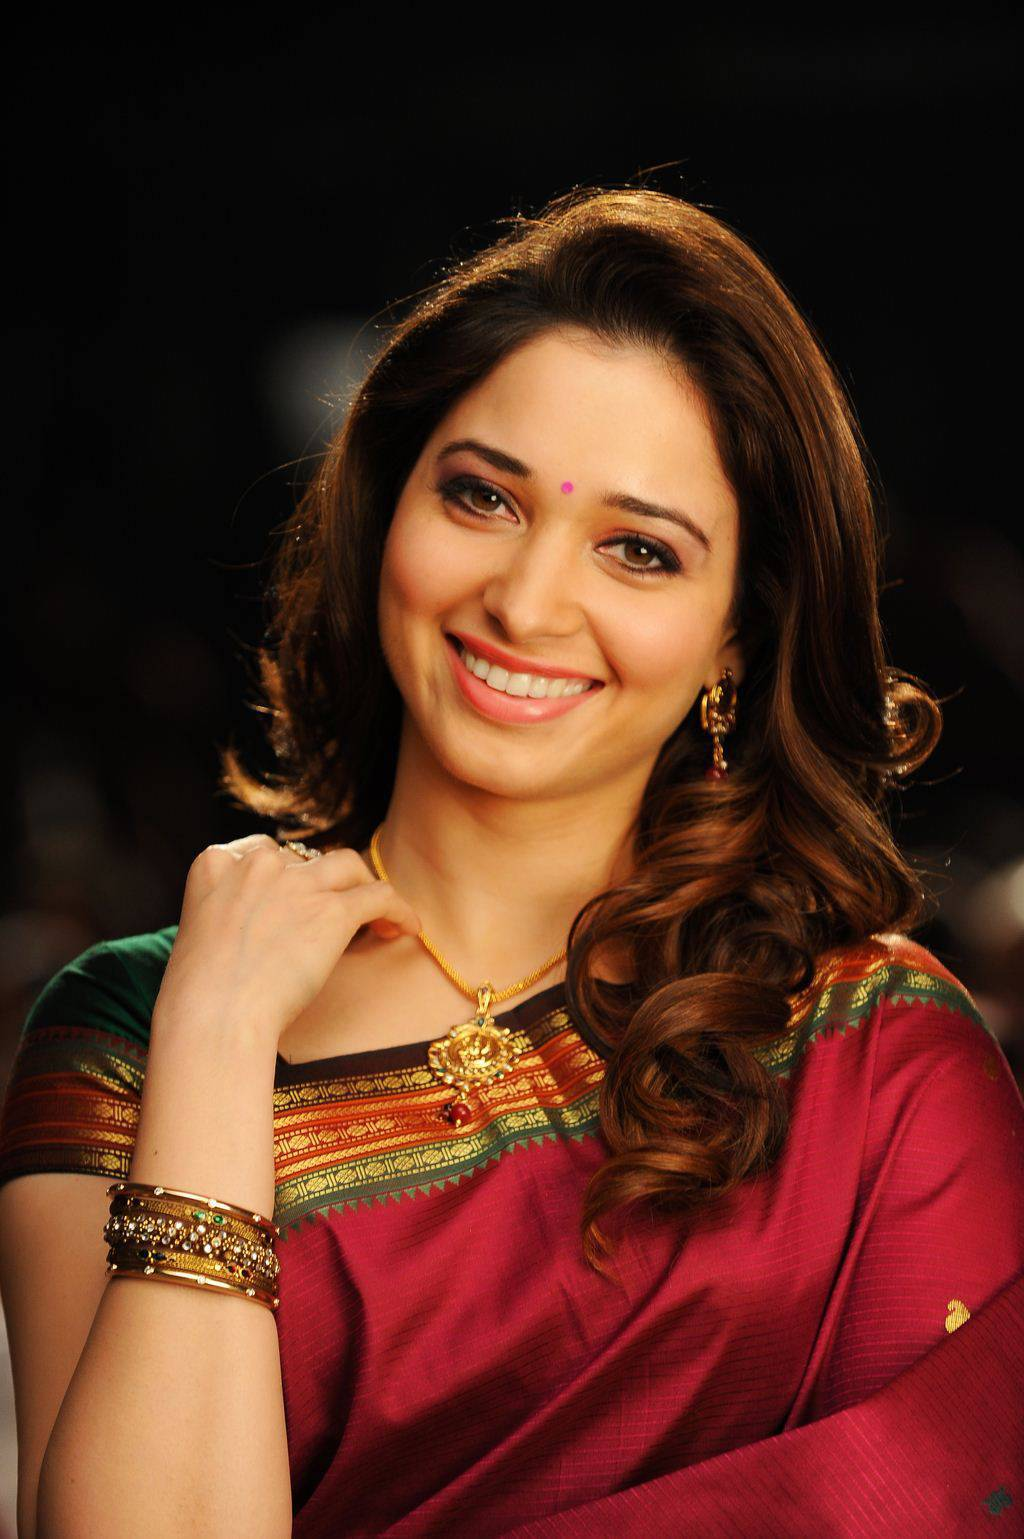 Tamanna Latest Stills From Vasuvum Saravananum Onna Padichavanga Tamil Movie